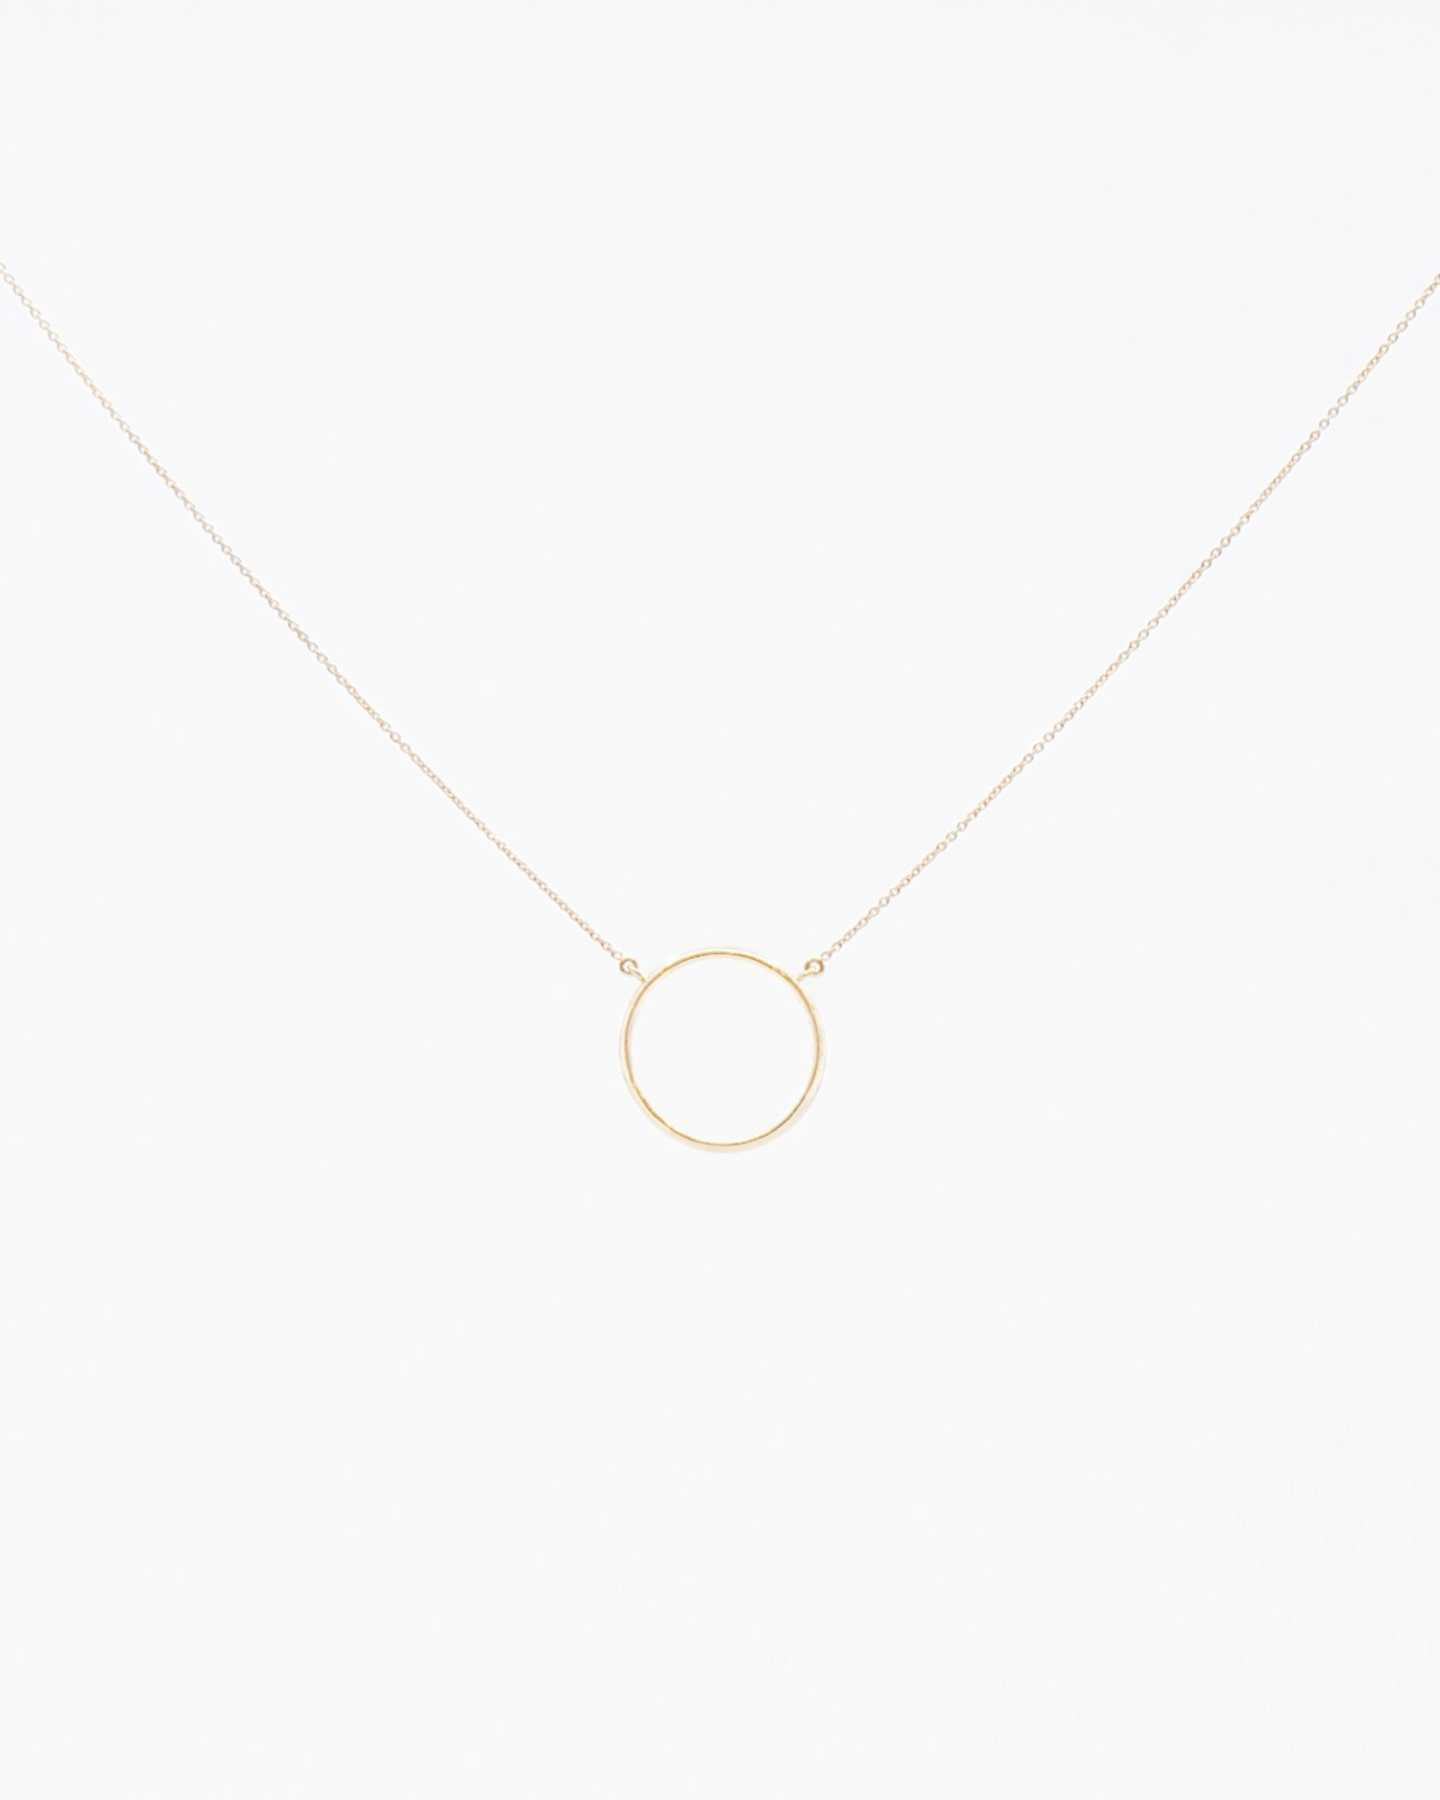 Eternity Necklace - Gold Vermeil - 0